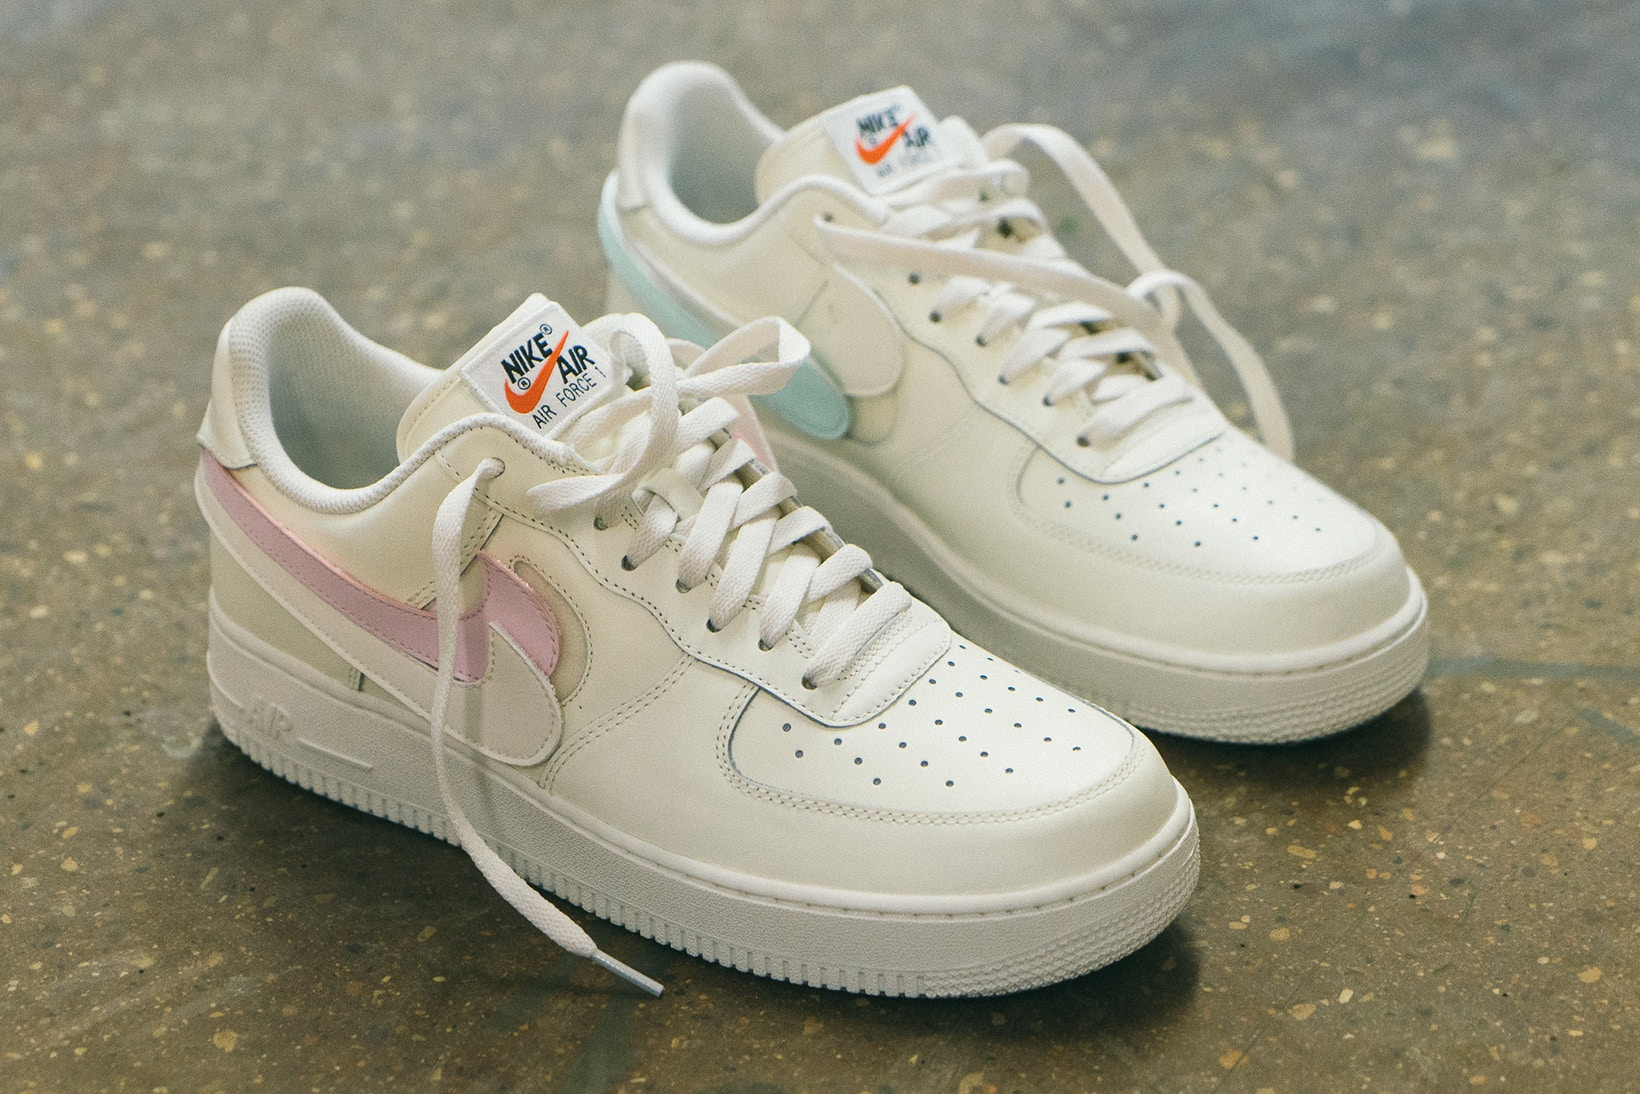 Nike S Customisable Air Force 1 Is Launching With Pretty